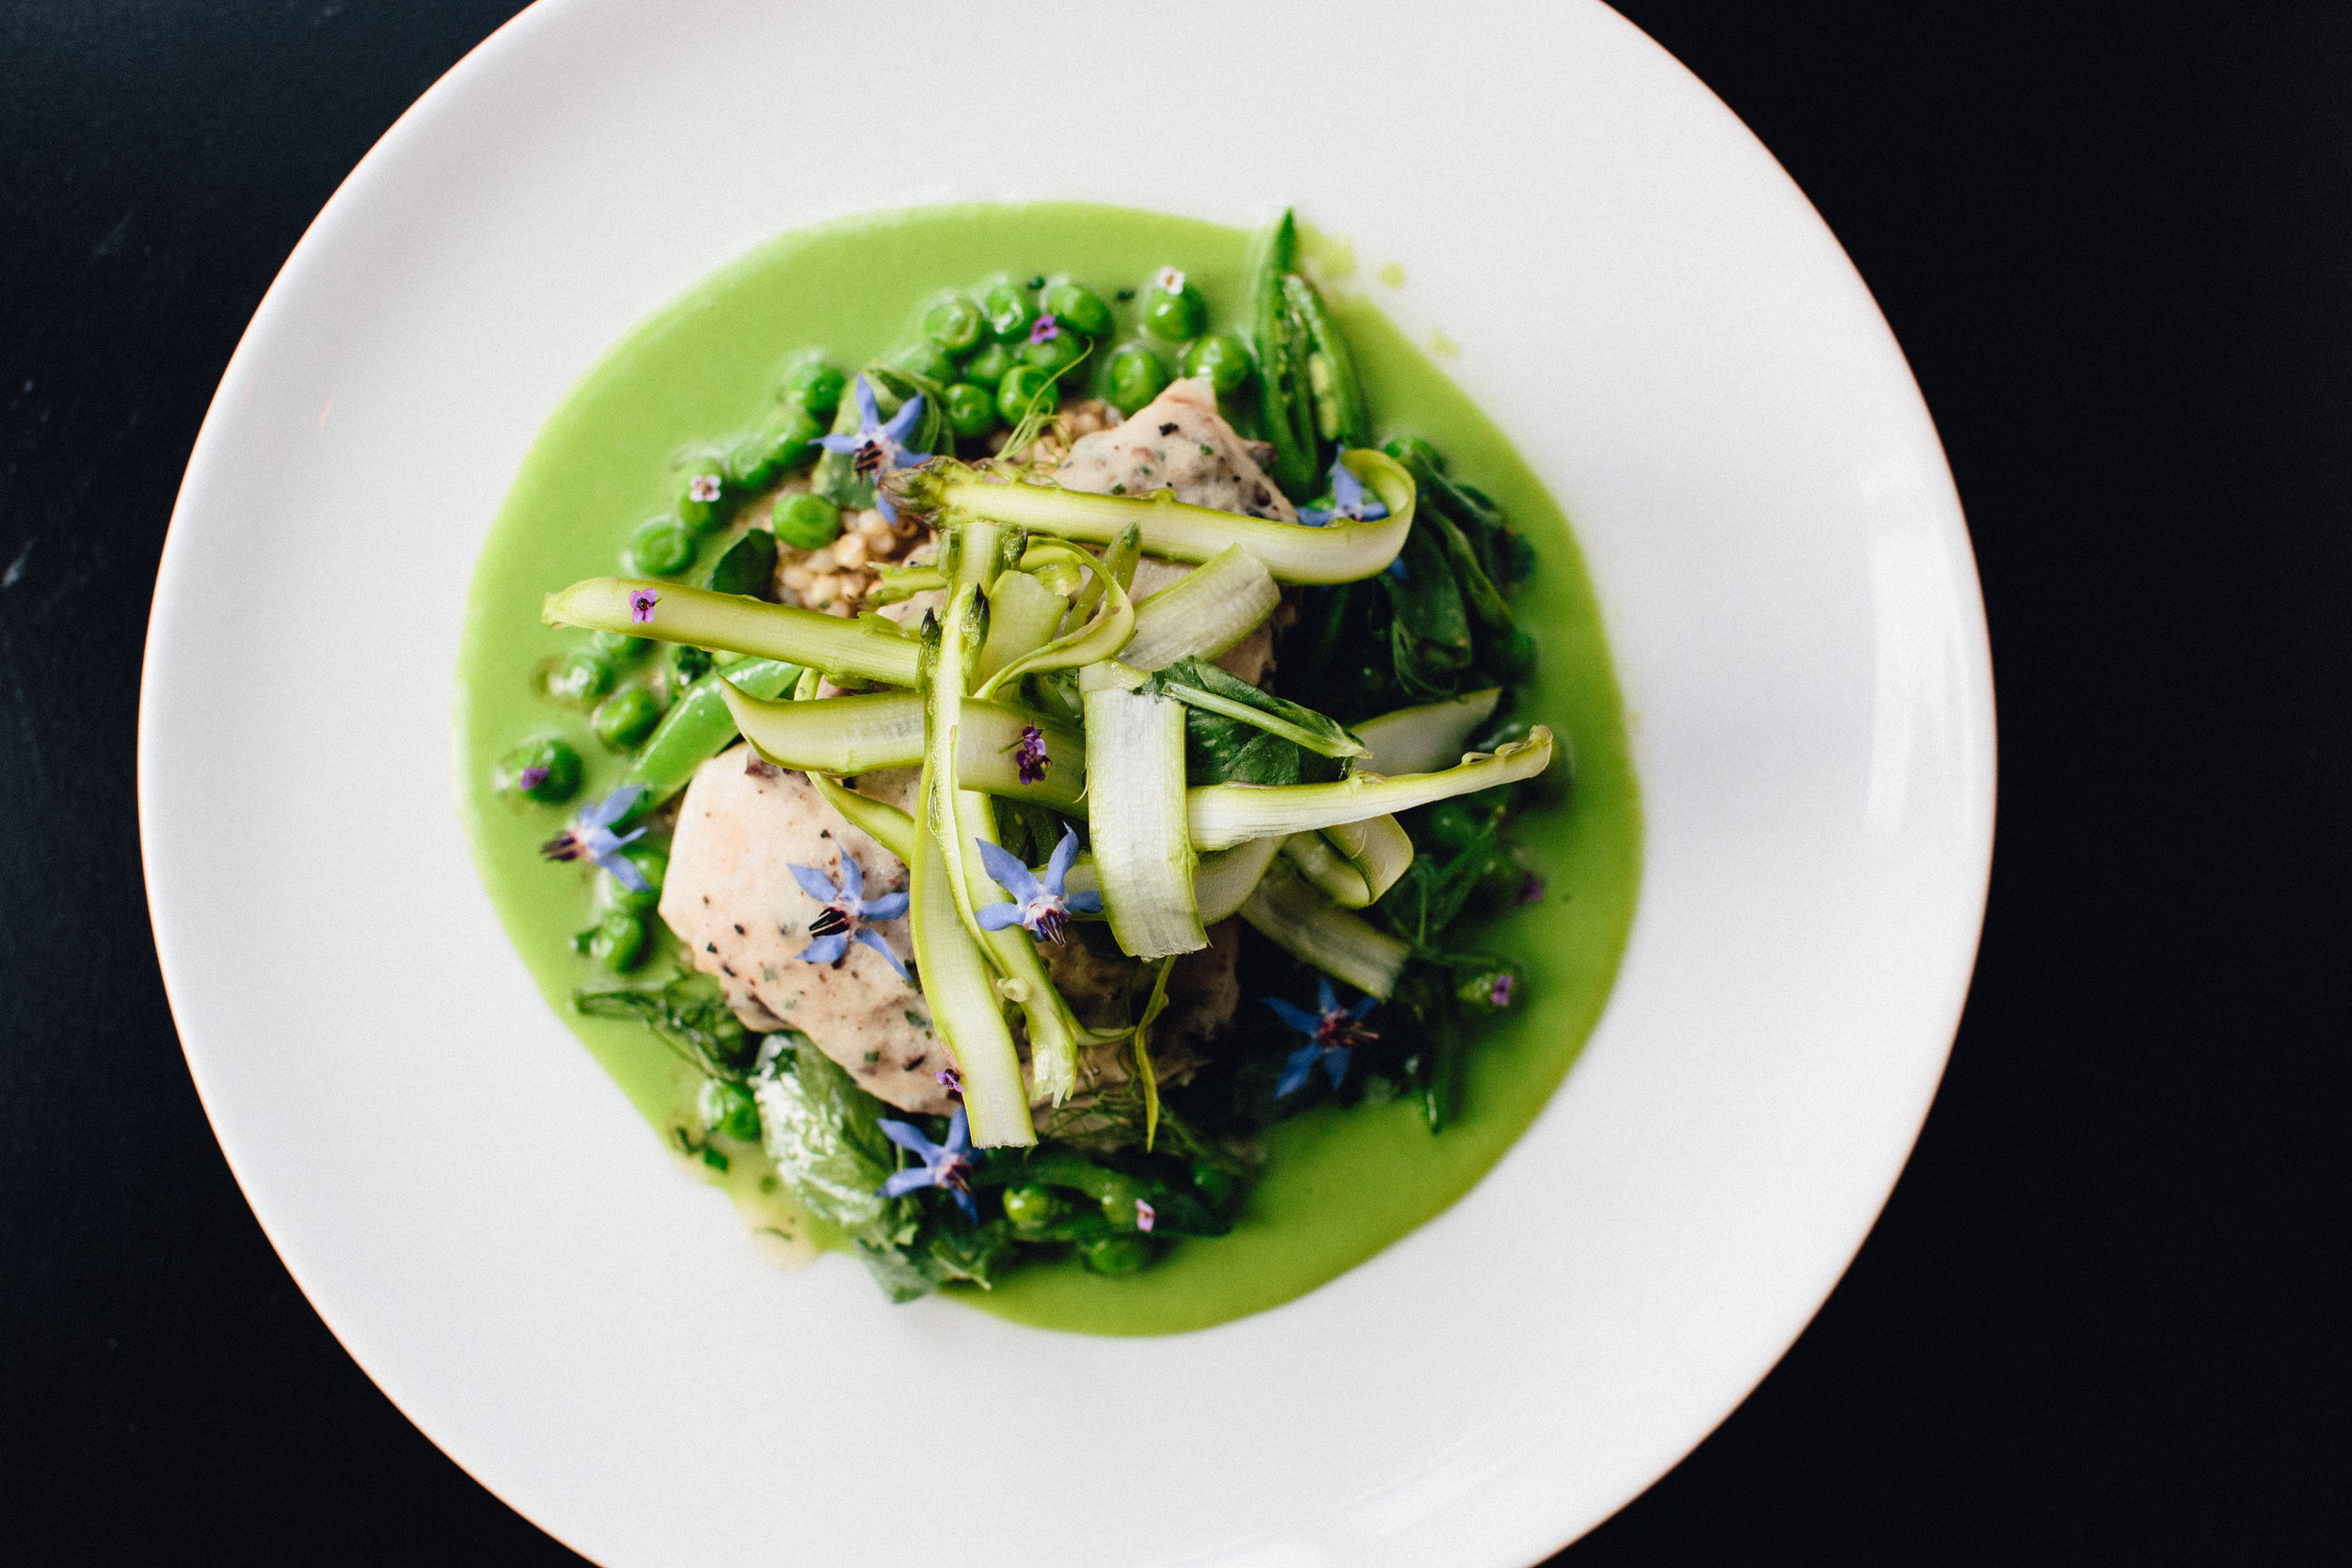 Steamed Red Snapper encrusted with a scallop & truffle mousse. Served over sorghum grains with a pea butter, spring peas, sugar snap peas, shaved raw asparagus, mint. Dressed with white balsamic vinaigrette.